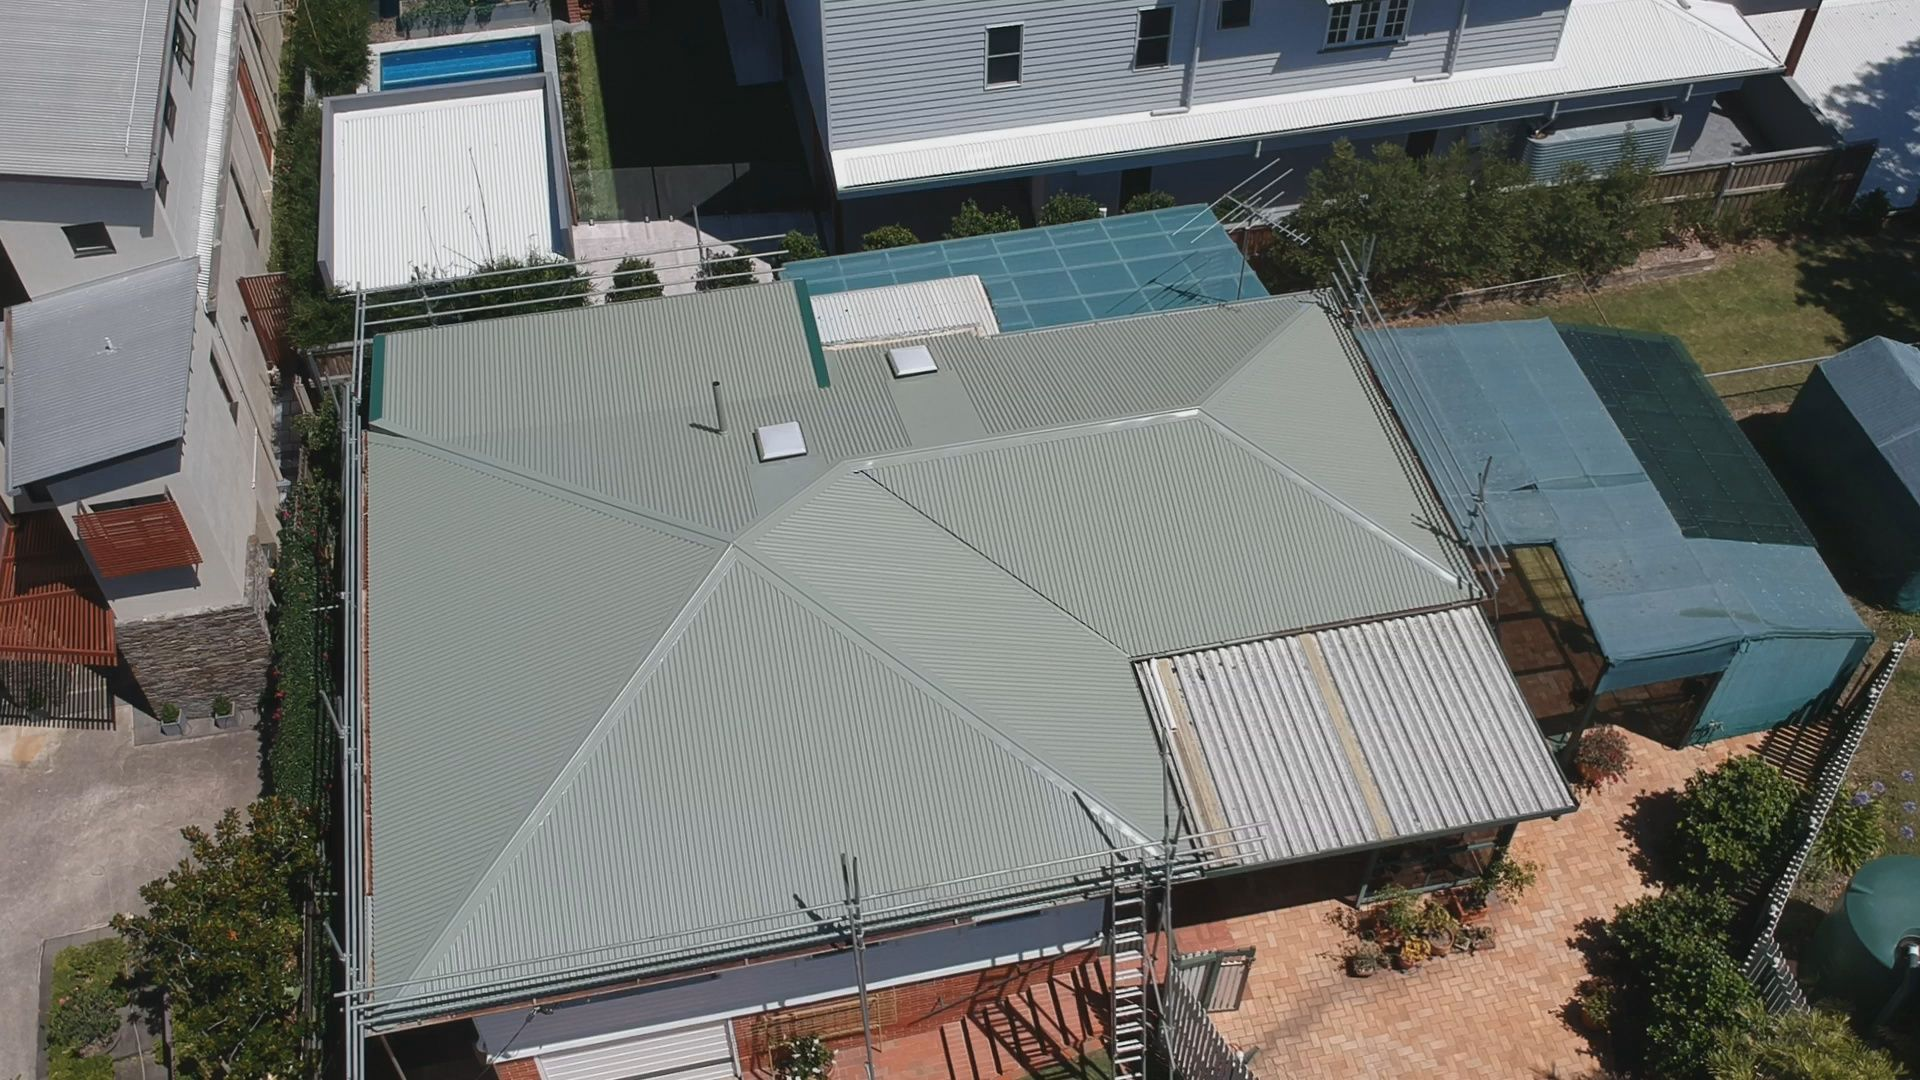 Metal Roofing Replacement In The Beautiful Suburb Of Red Hill The Home Of The Majestic Jubilee Catholic Church The Owners Contact Metal Roof Roofing Red Hill